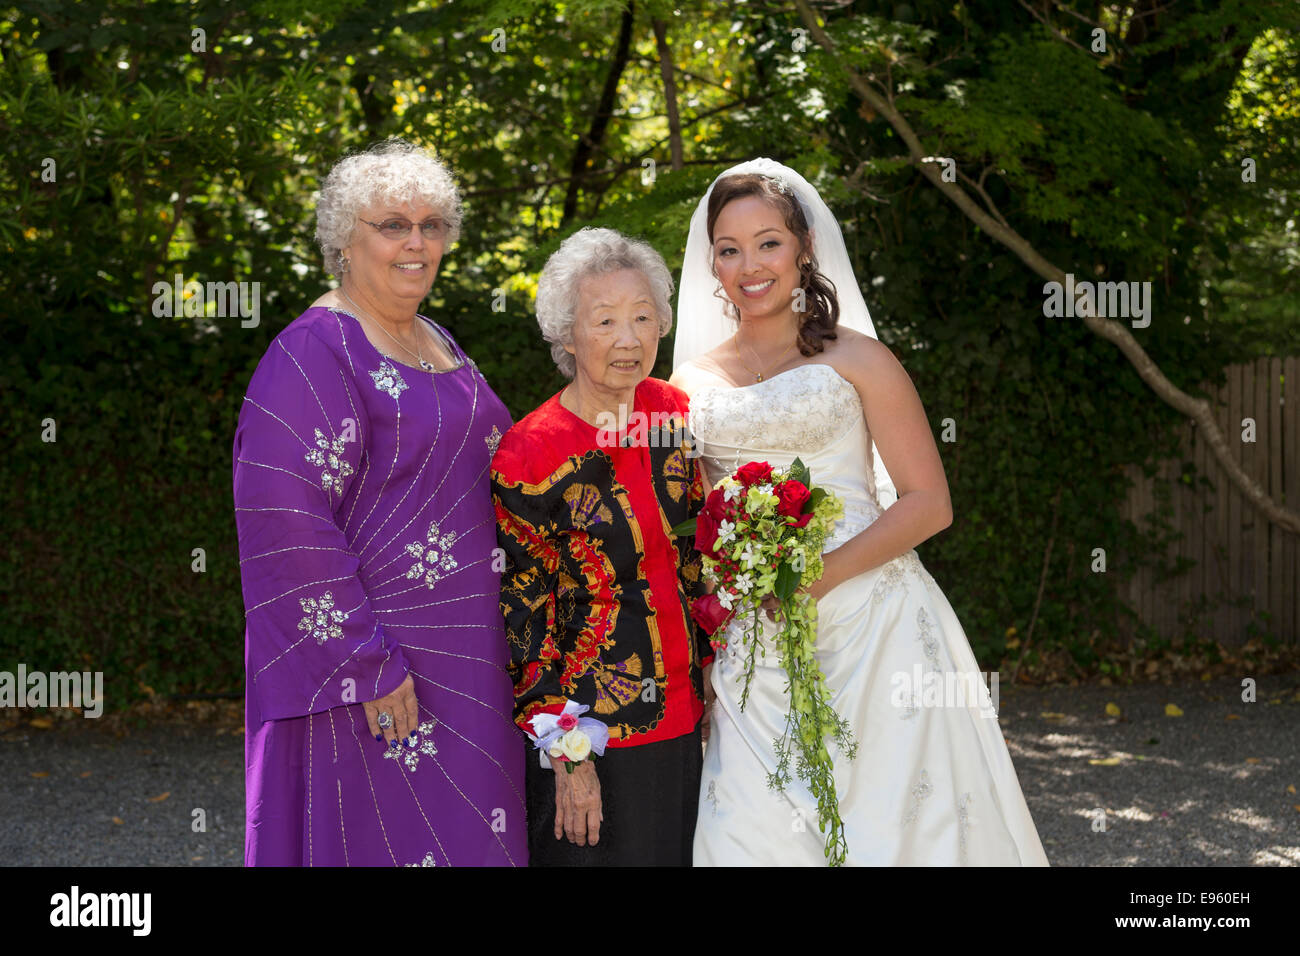 3 three generations, bride with mother and grandmother wedding party wedding at Marin Art and Garden Center in Ross - Stock Image